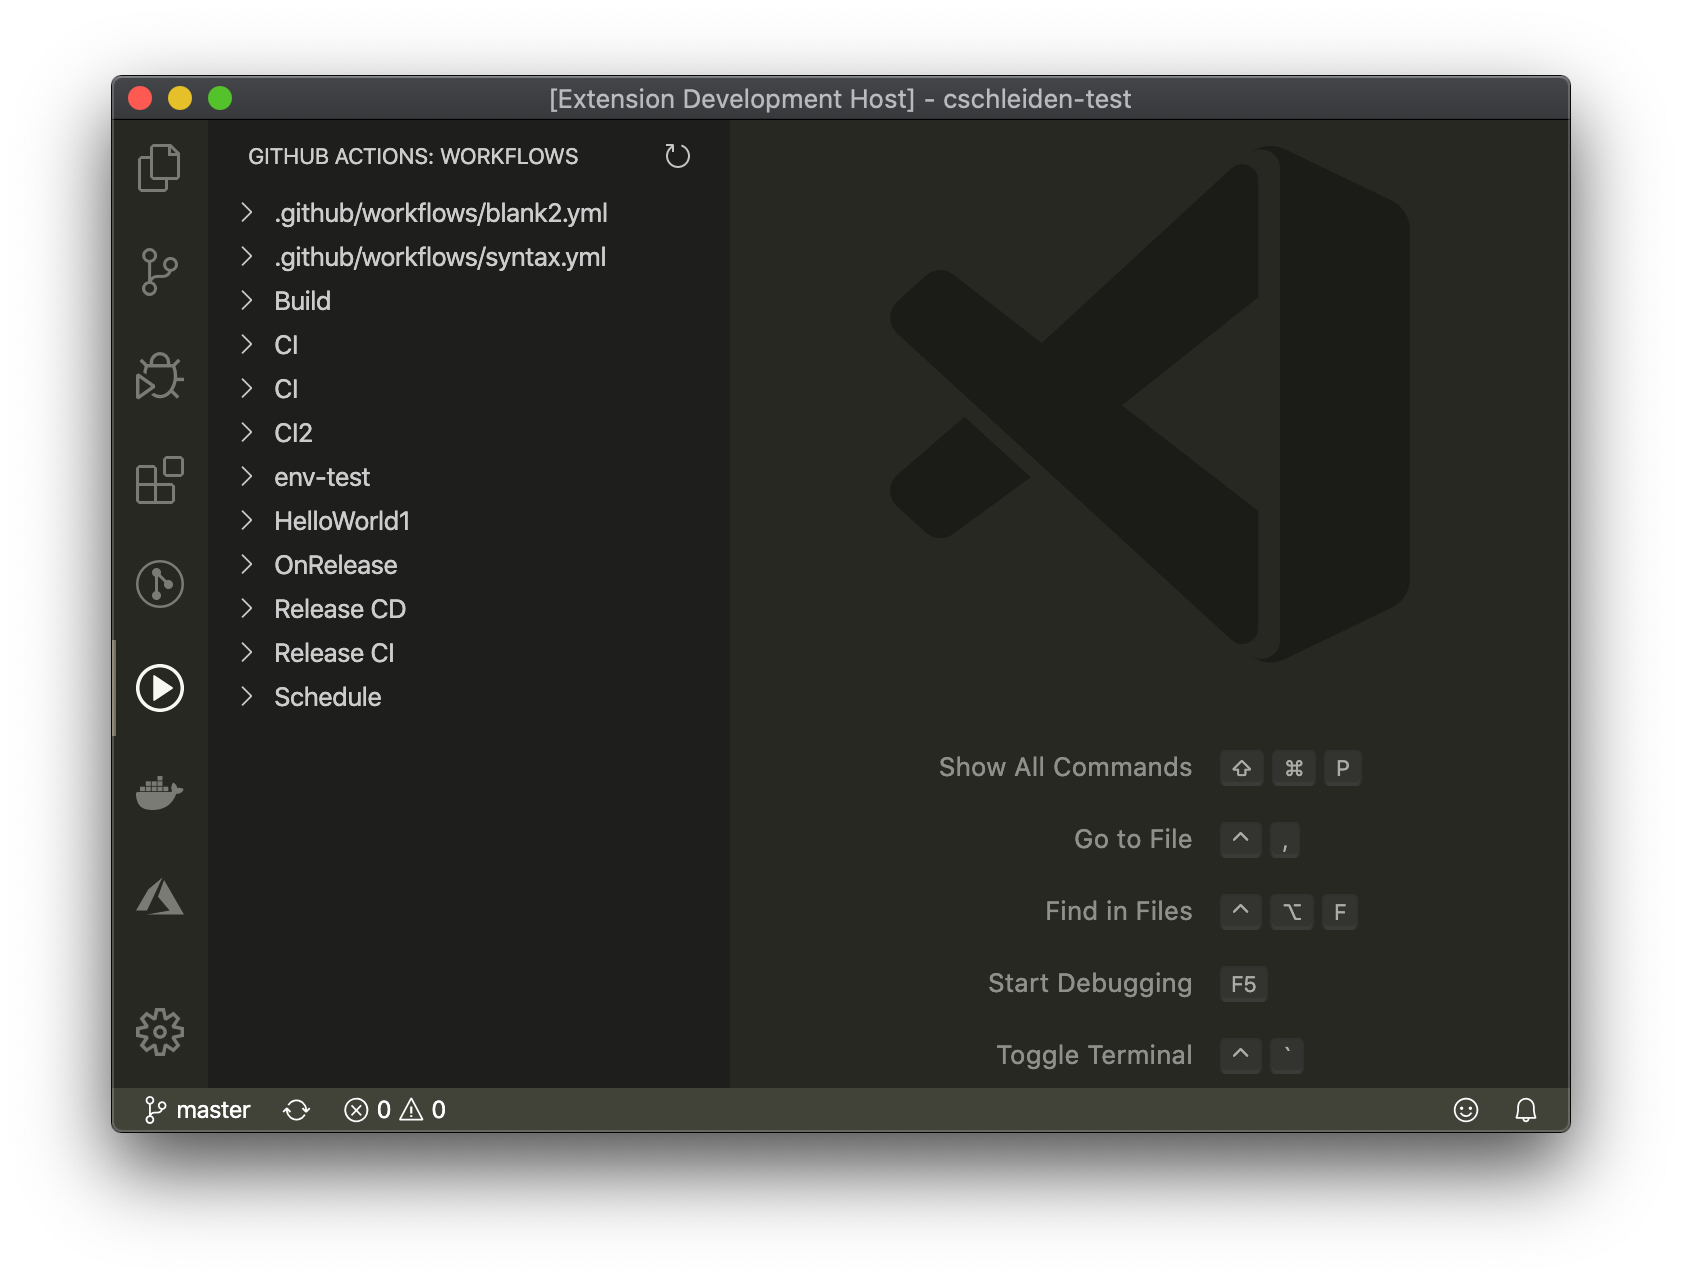 See workflows and runs for the current repository